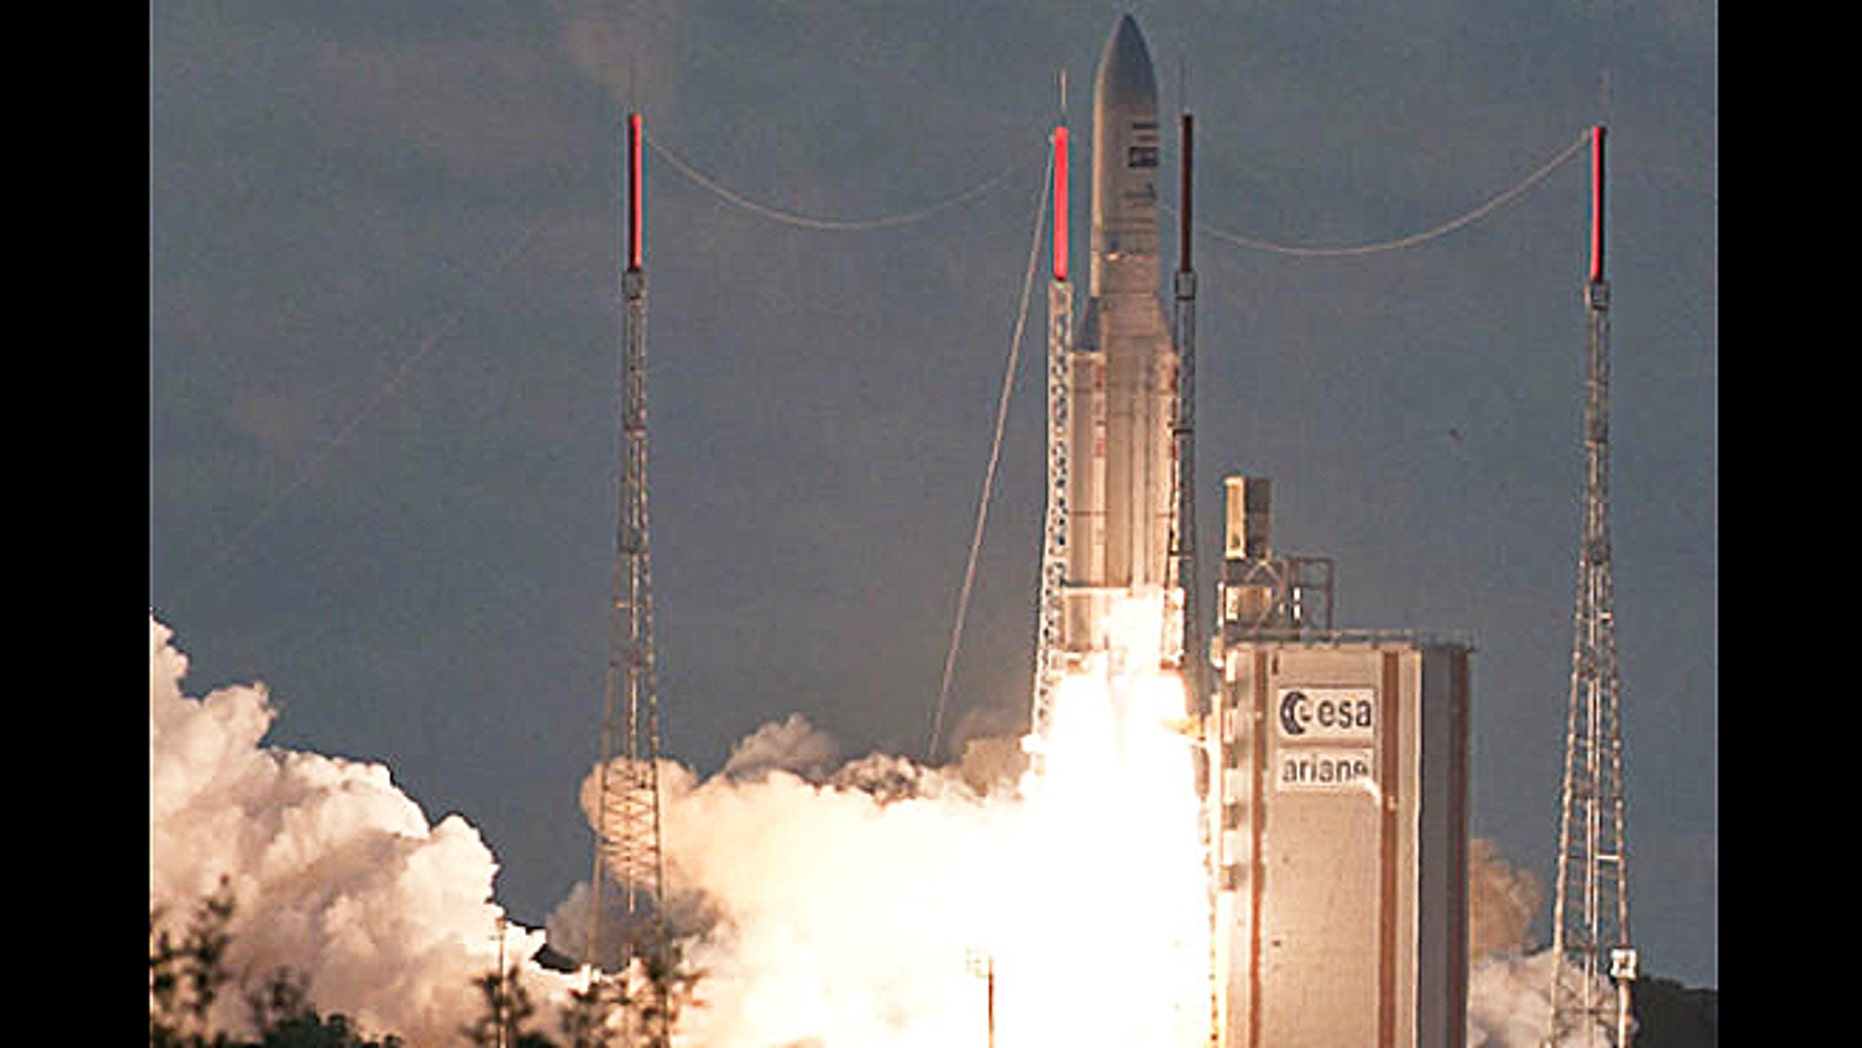 July 5, 2012: An Ariane 5 ascends from French Guiana at sunset with the EchoStar 17 and MSG-3 satellite payloads into orbit from Guiana Space Center in Kourou, French Guiana.